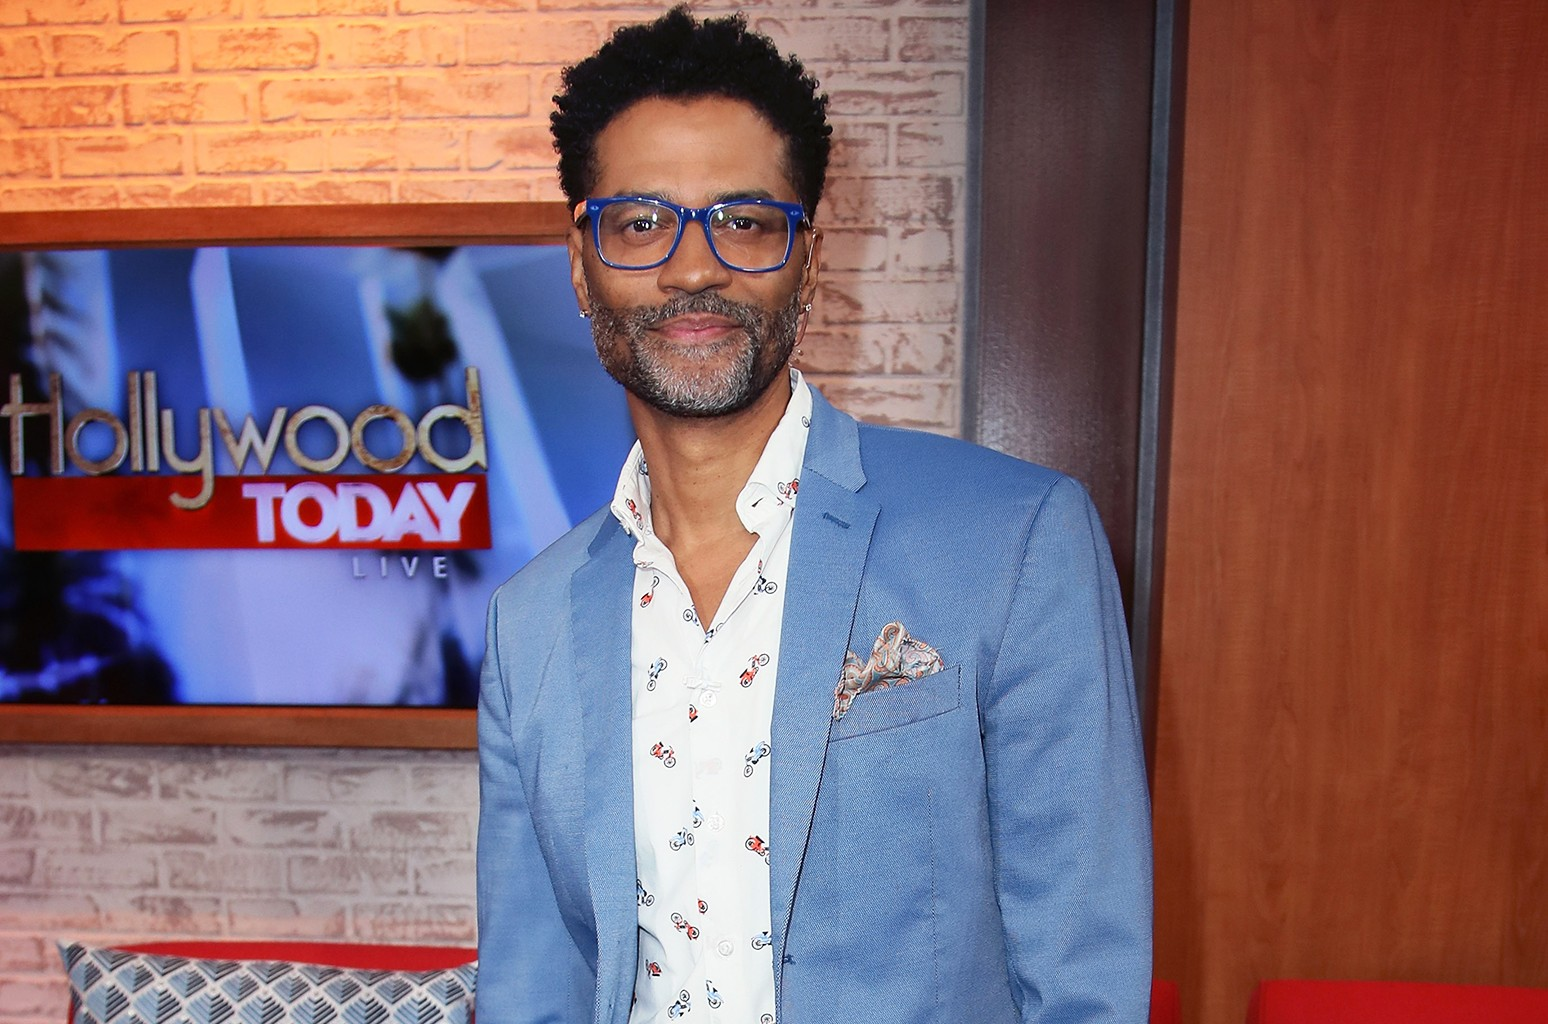 Eric Benet poses at Hollywood Today Live on Jan. 19, 2017 in Hollywood, Calif.